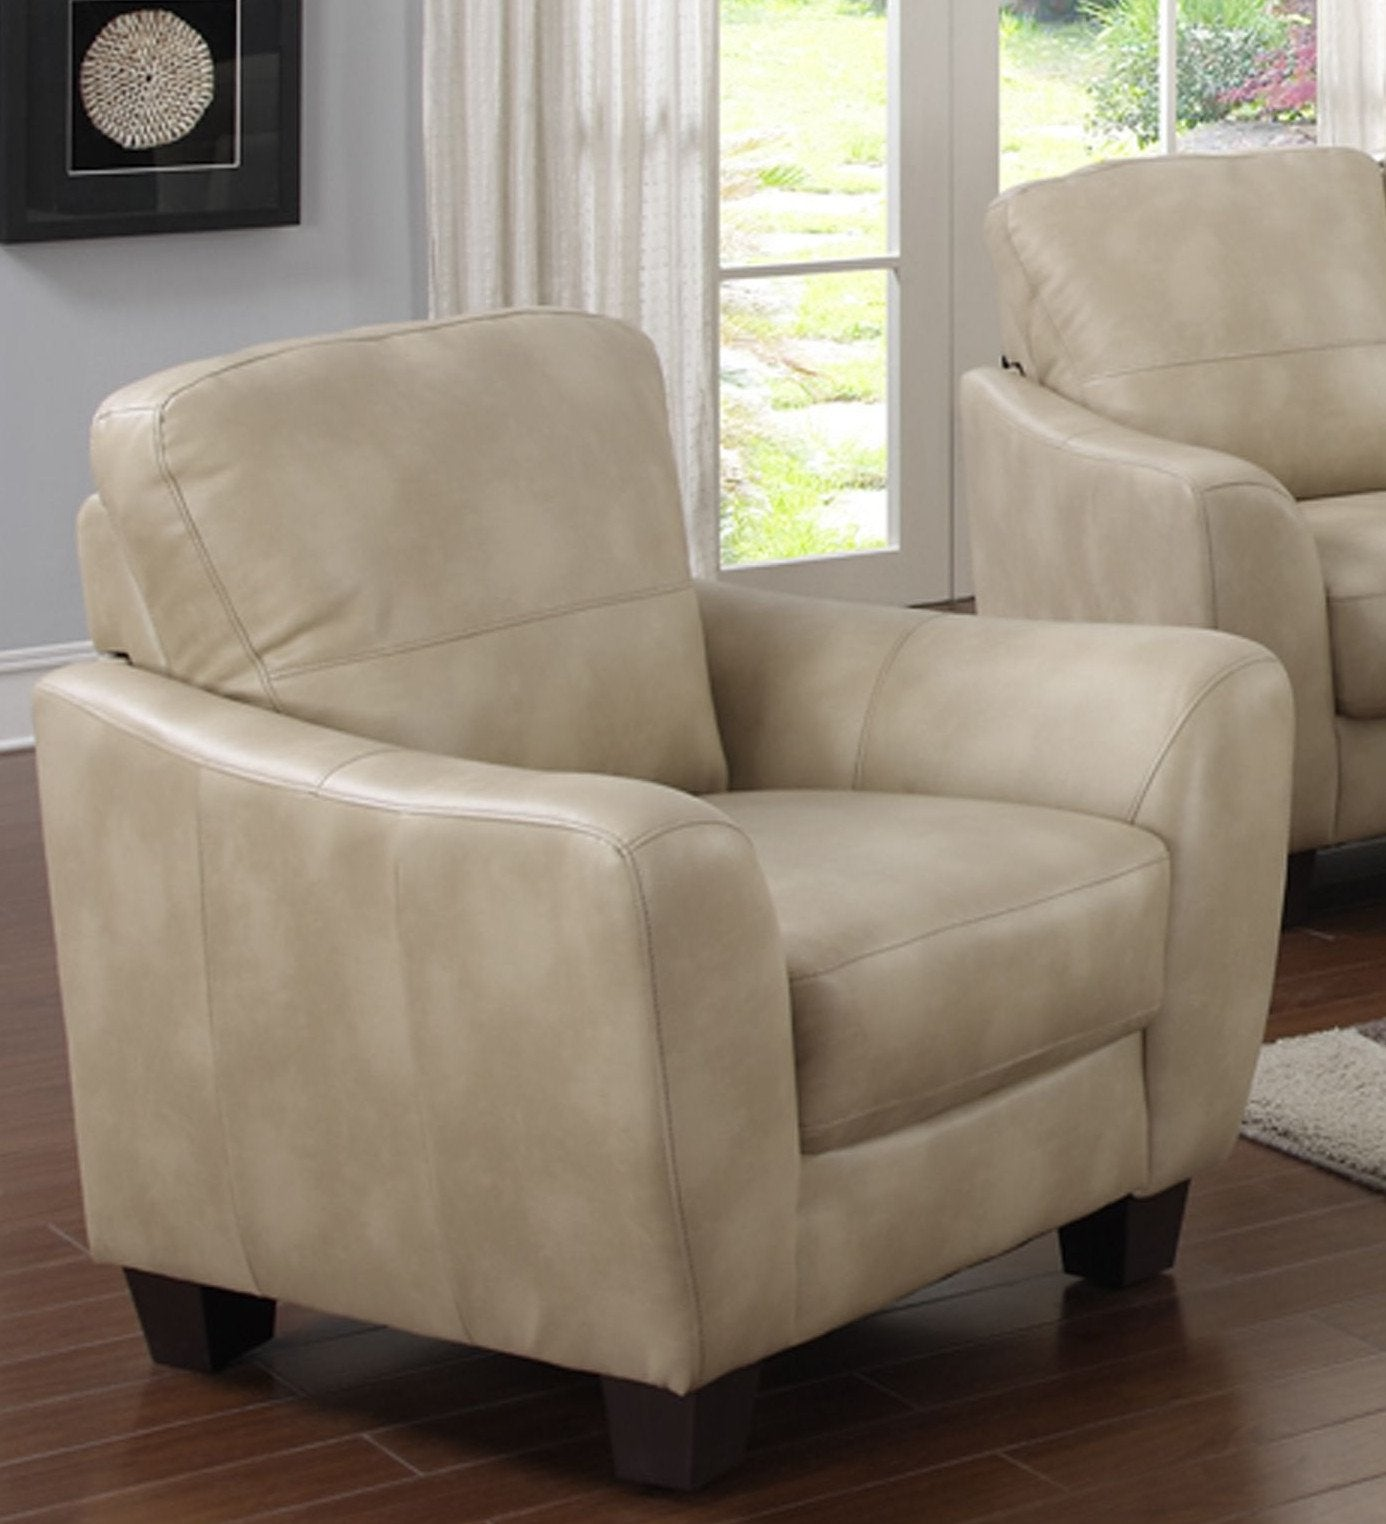 Chintaly Bonded Leather Chair Club